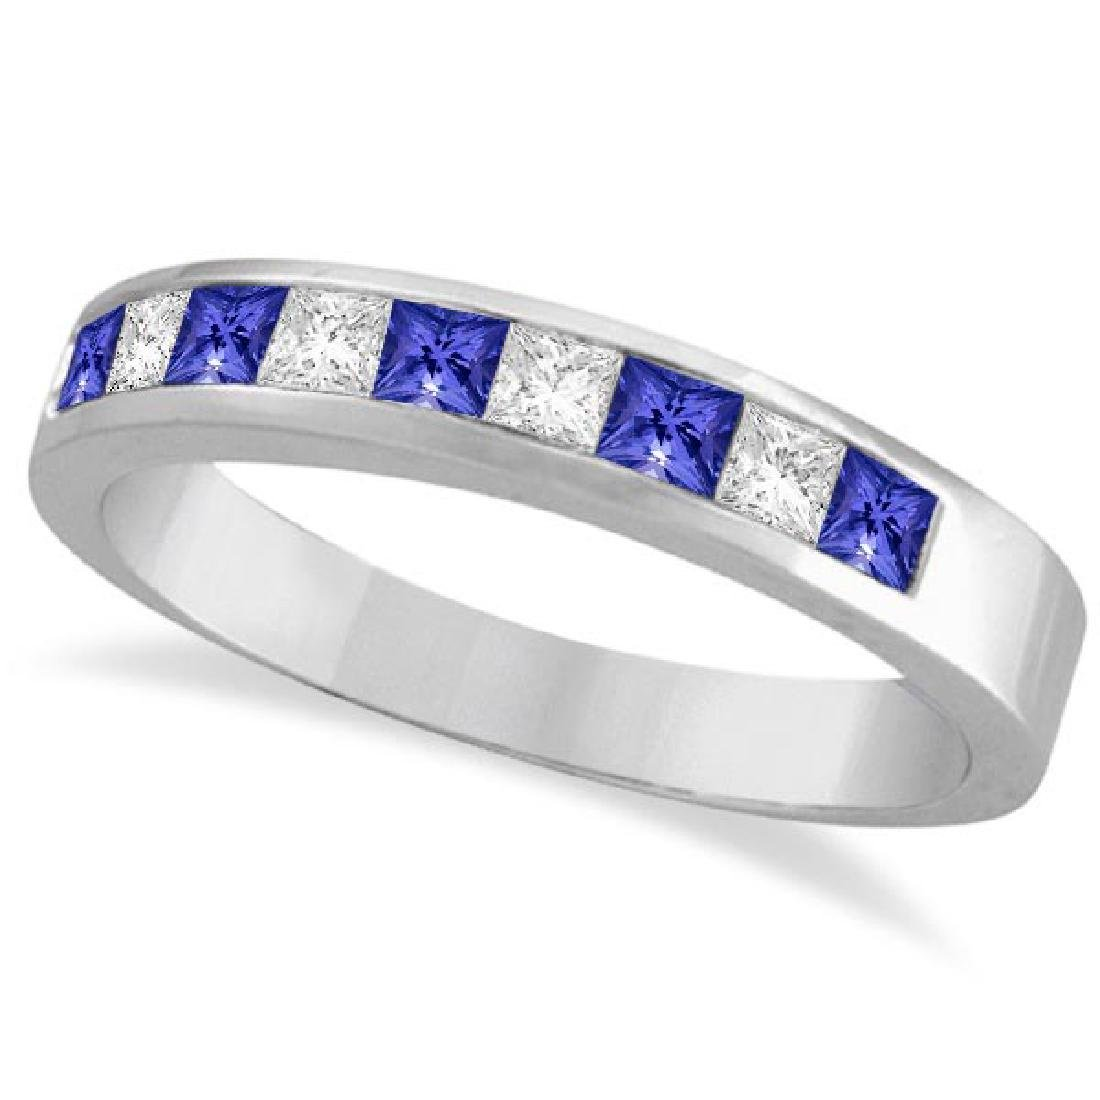 Princess-Cut Tanzanite and White Diamond Ring 14k White